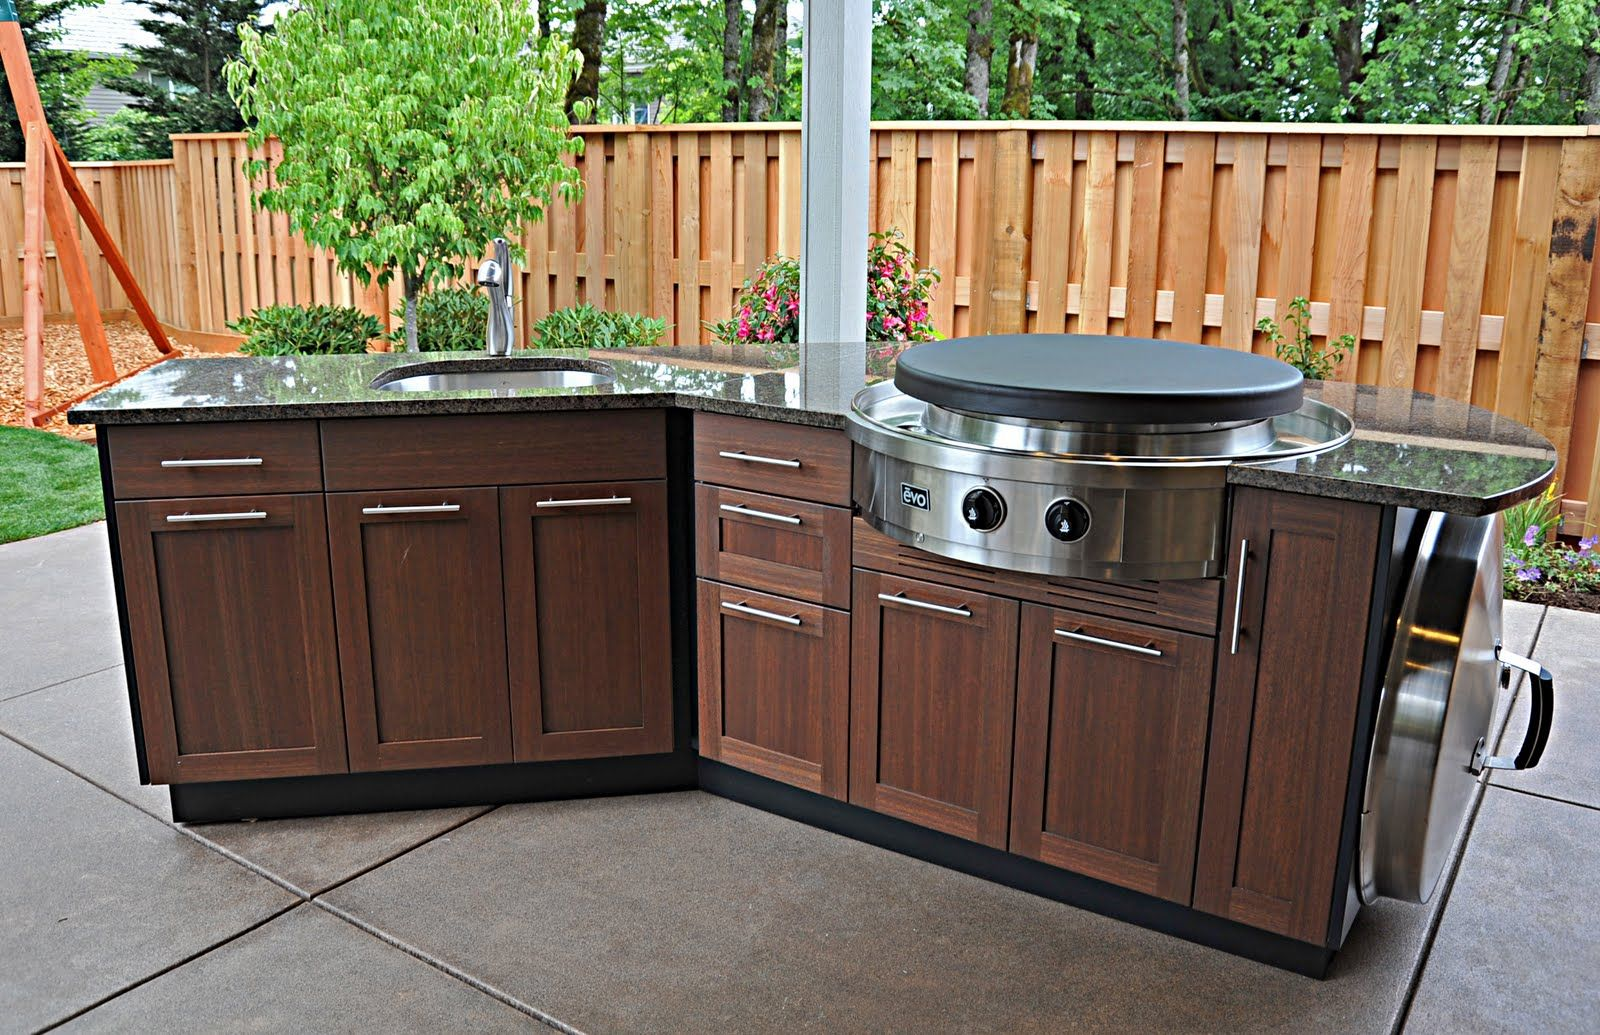 Evo In The Nw Street Of Dreams Outdoor Kitchen Cabinets Outdoor Kitchen Design Outdoor Kitchen Kits